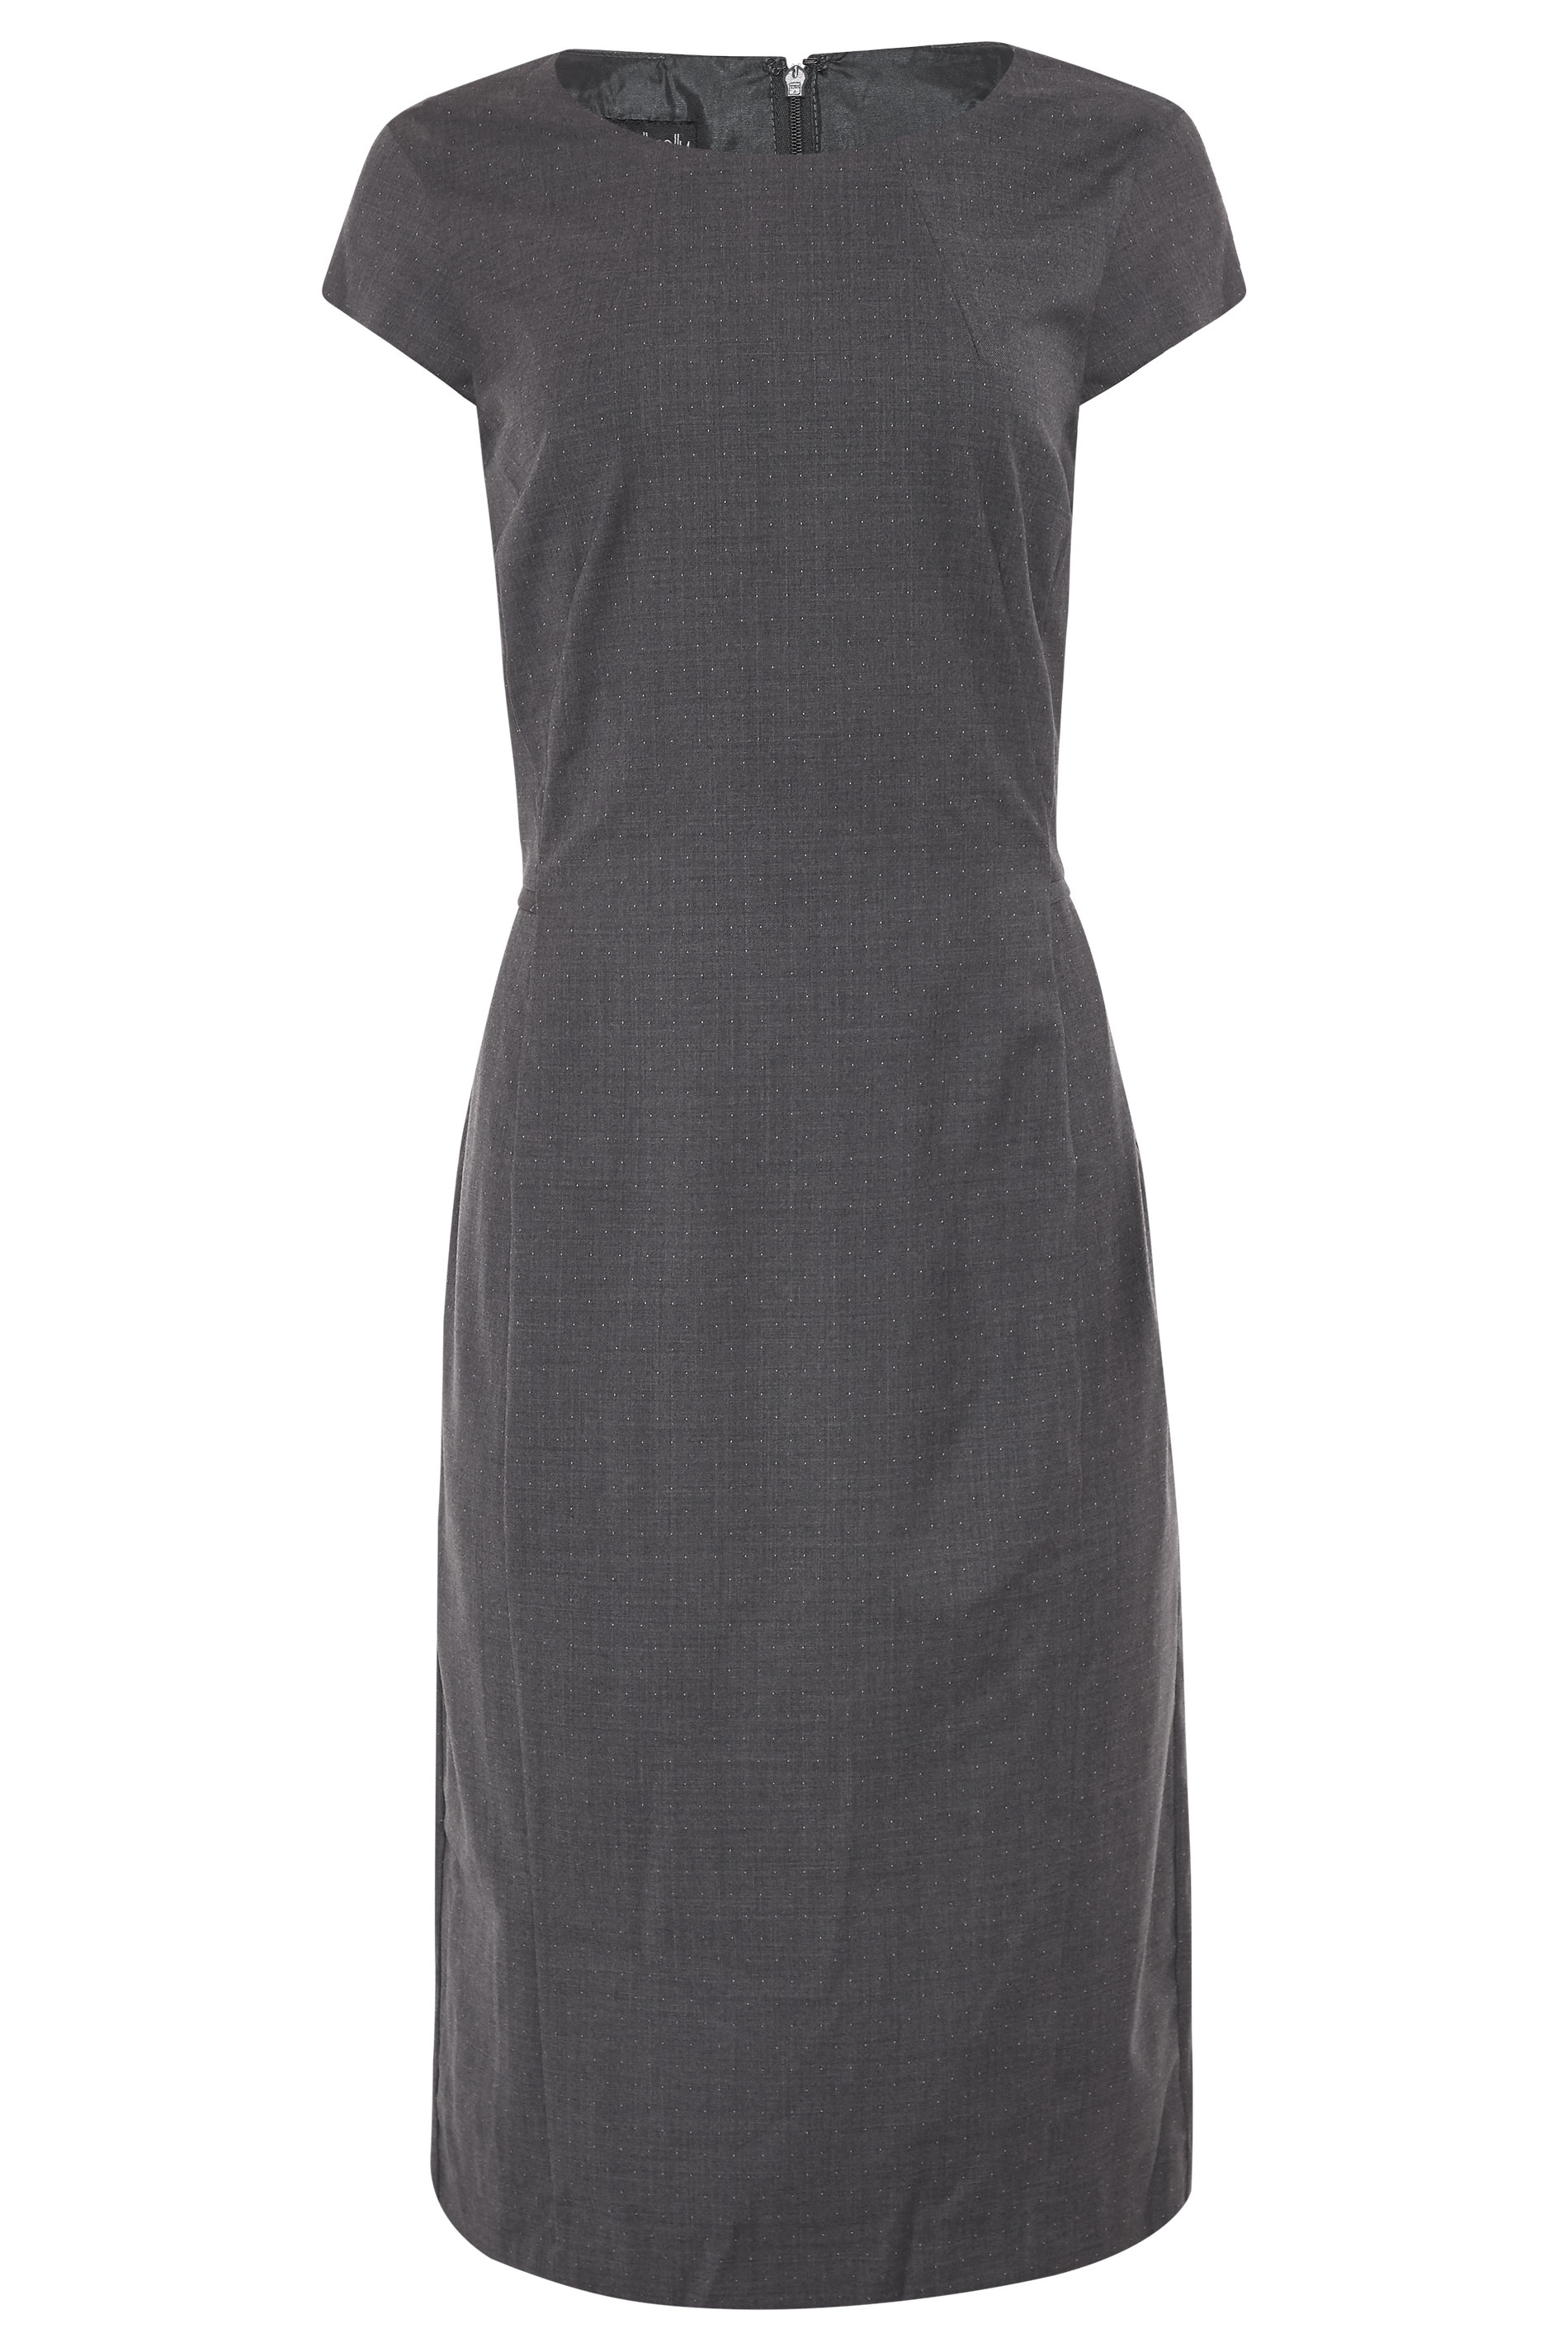 Grey Wool Mix Spot Dress